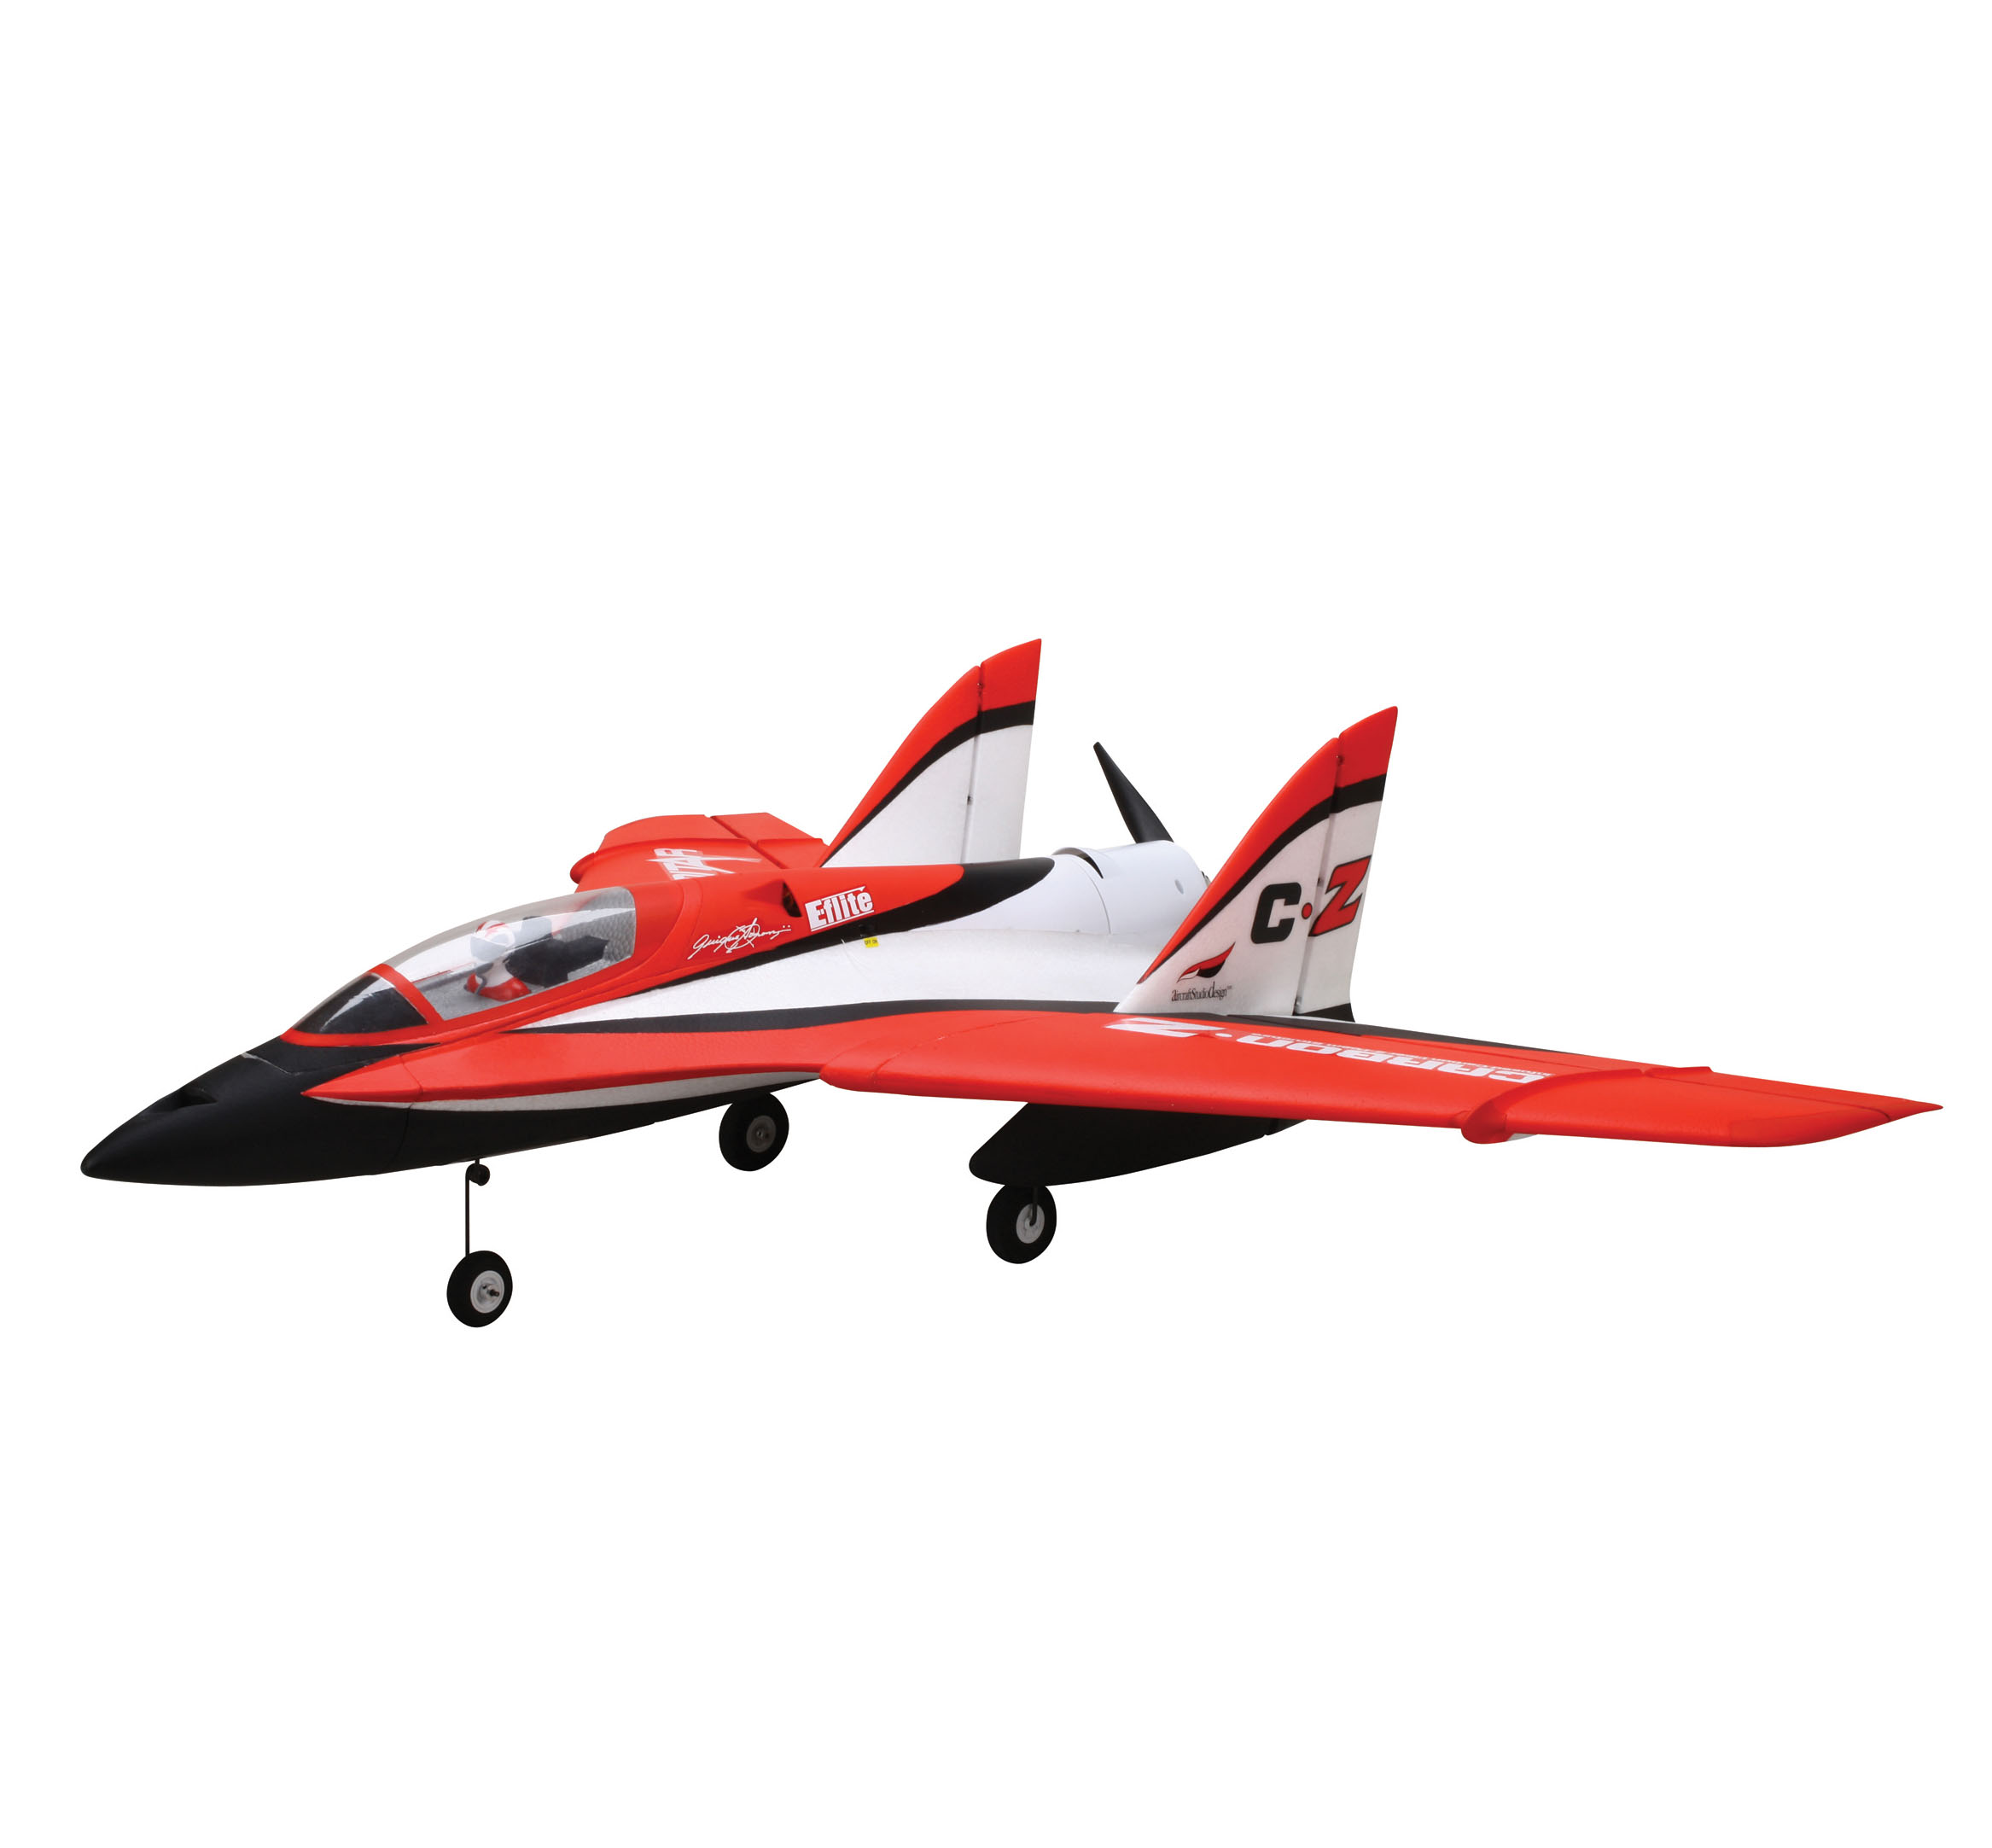 E-flite Carbon-Z Scimitar, with Vectored-Thrust